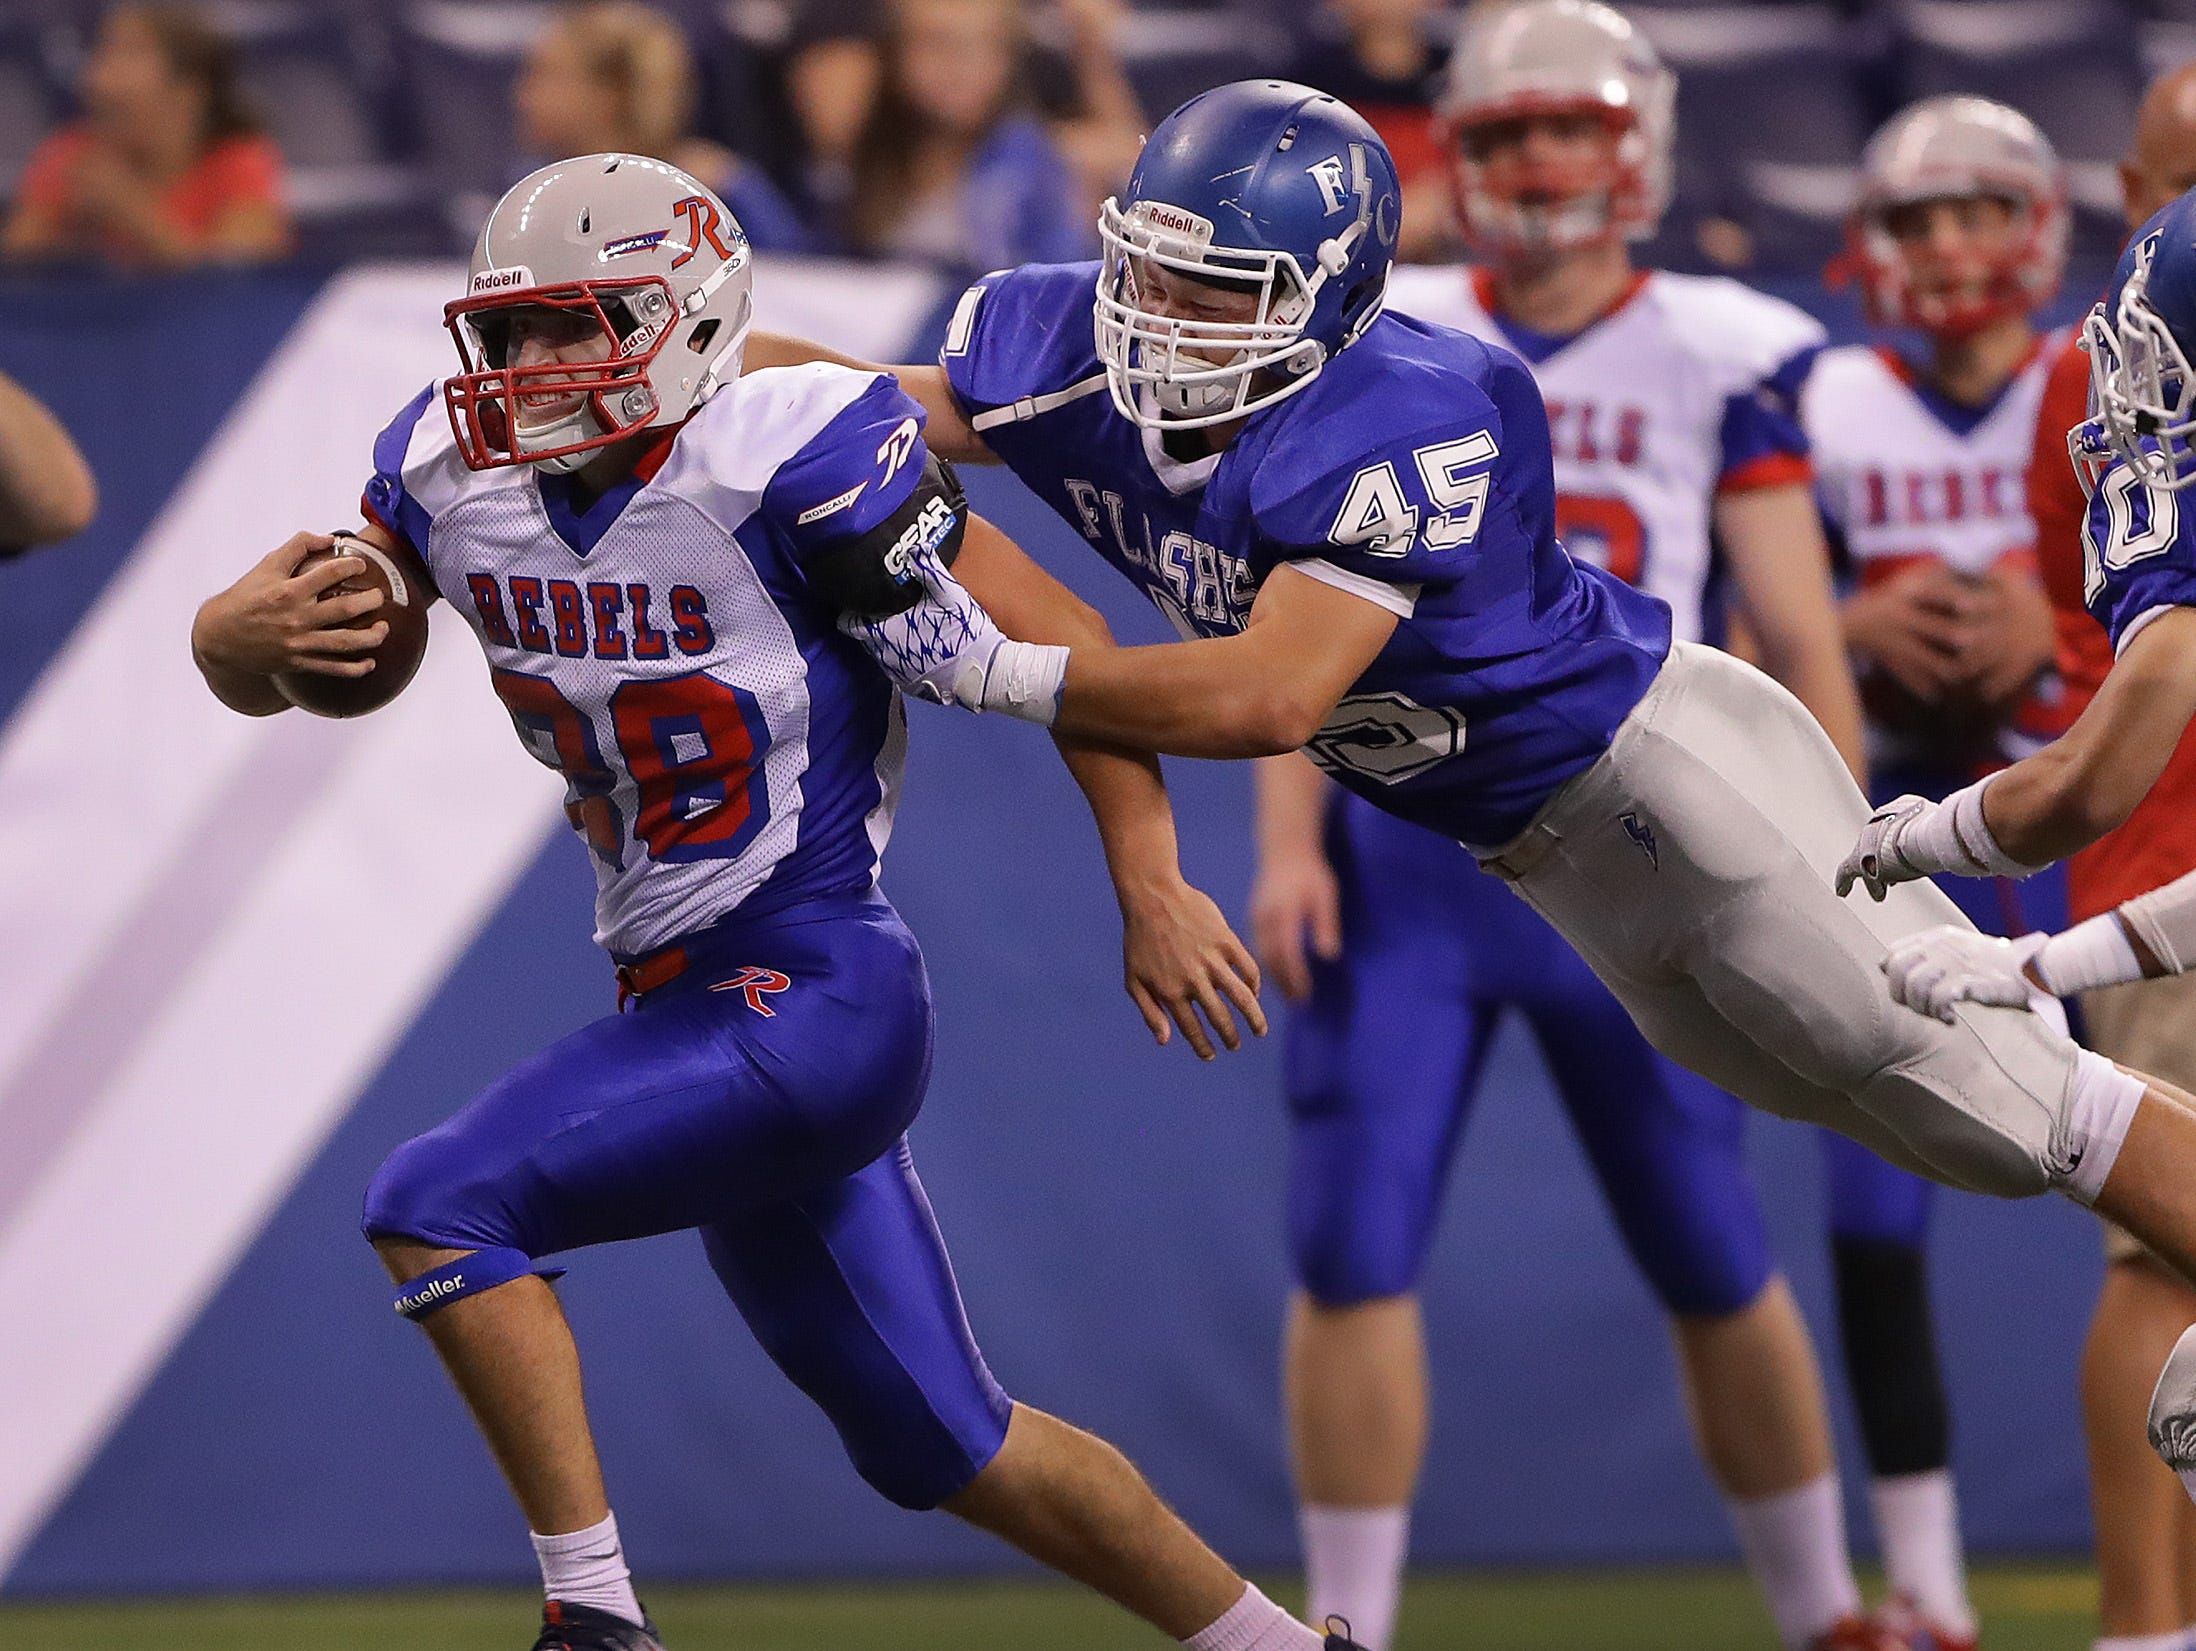 Roncallli's Kenny Gillum (28) is hit by Franklin Central's Chris Ford (45) in the first half of their game. The Franklin Central Flashes played the Roncallli Rebels in high school football Friday, August 26, 2015, evening at Lucas Oil Stadium.